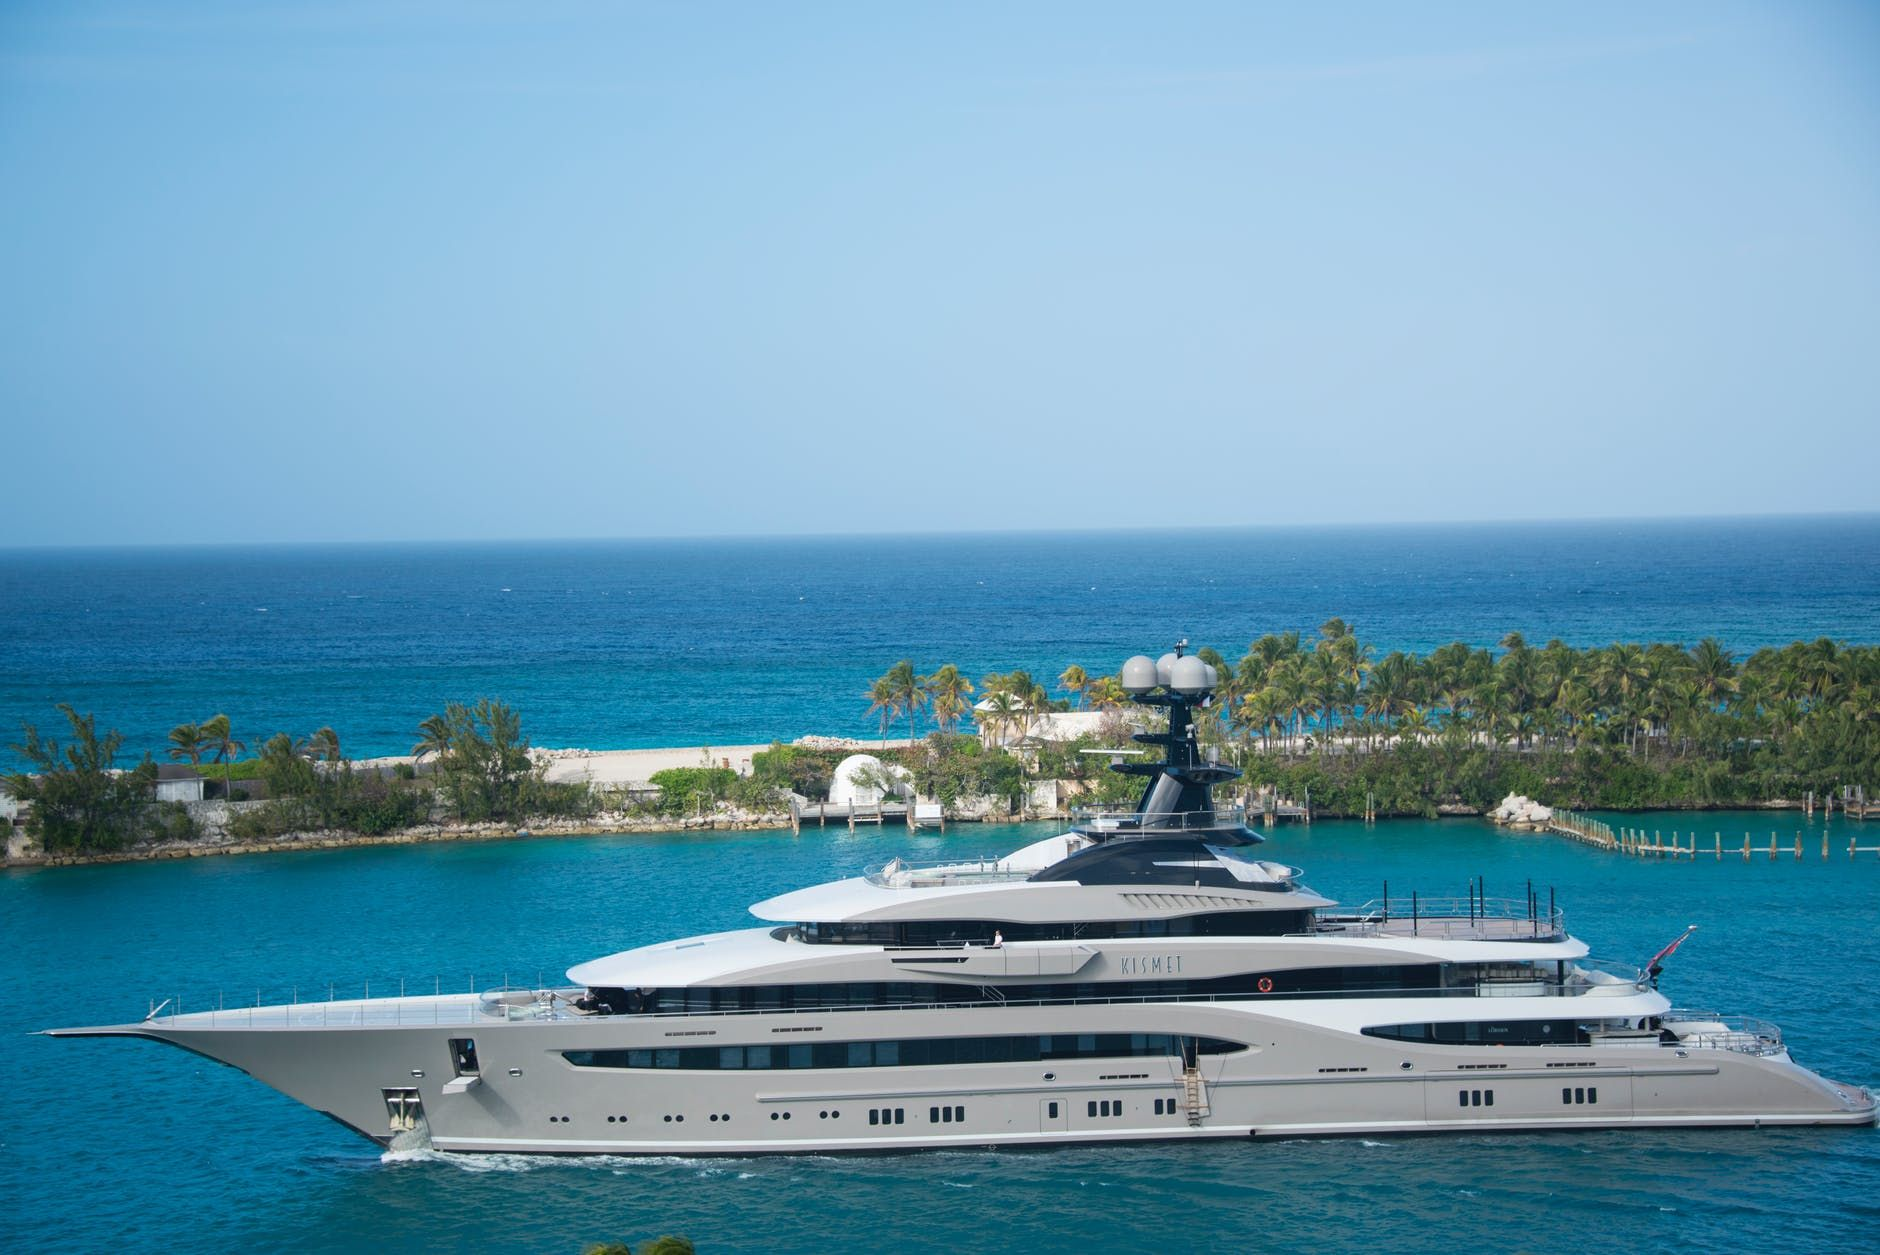 How Much Does it Cost to Rent a Yacht? Luxury yachts